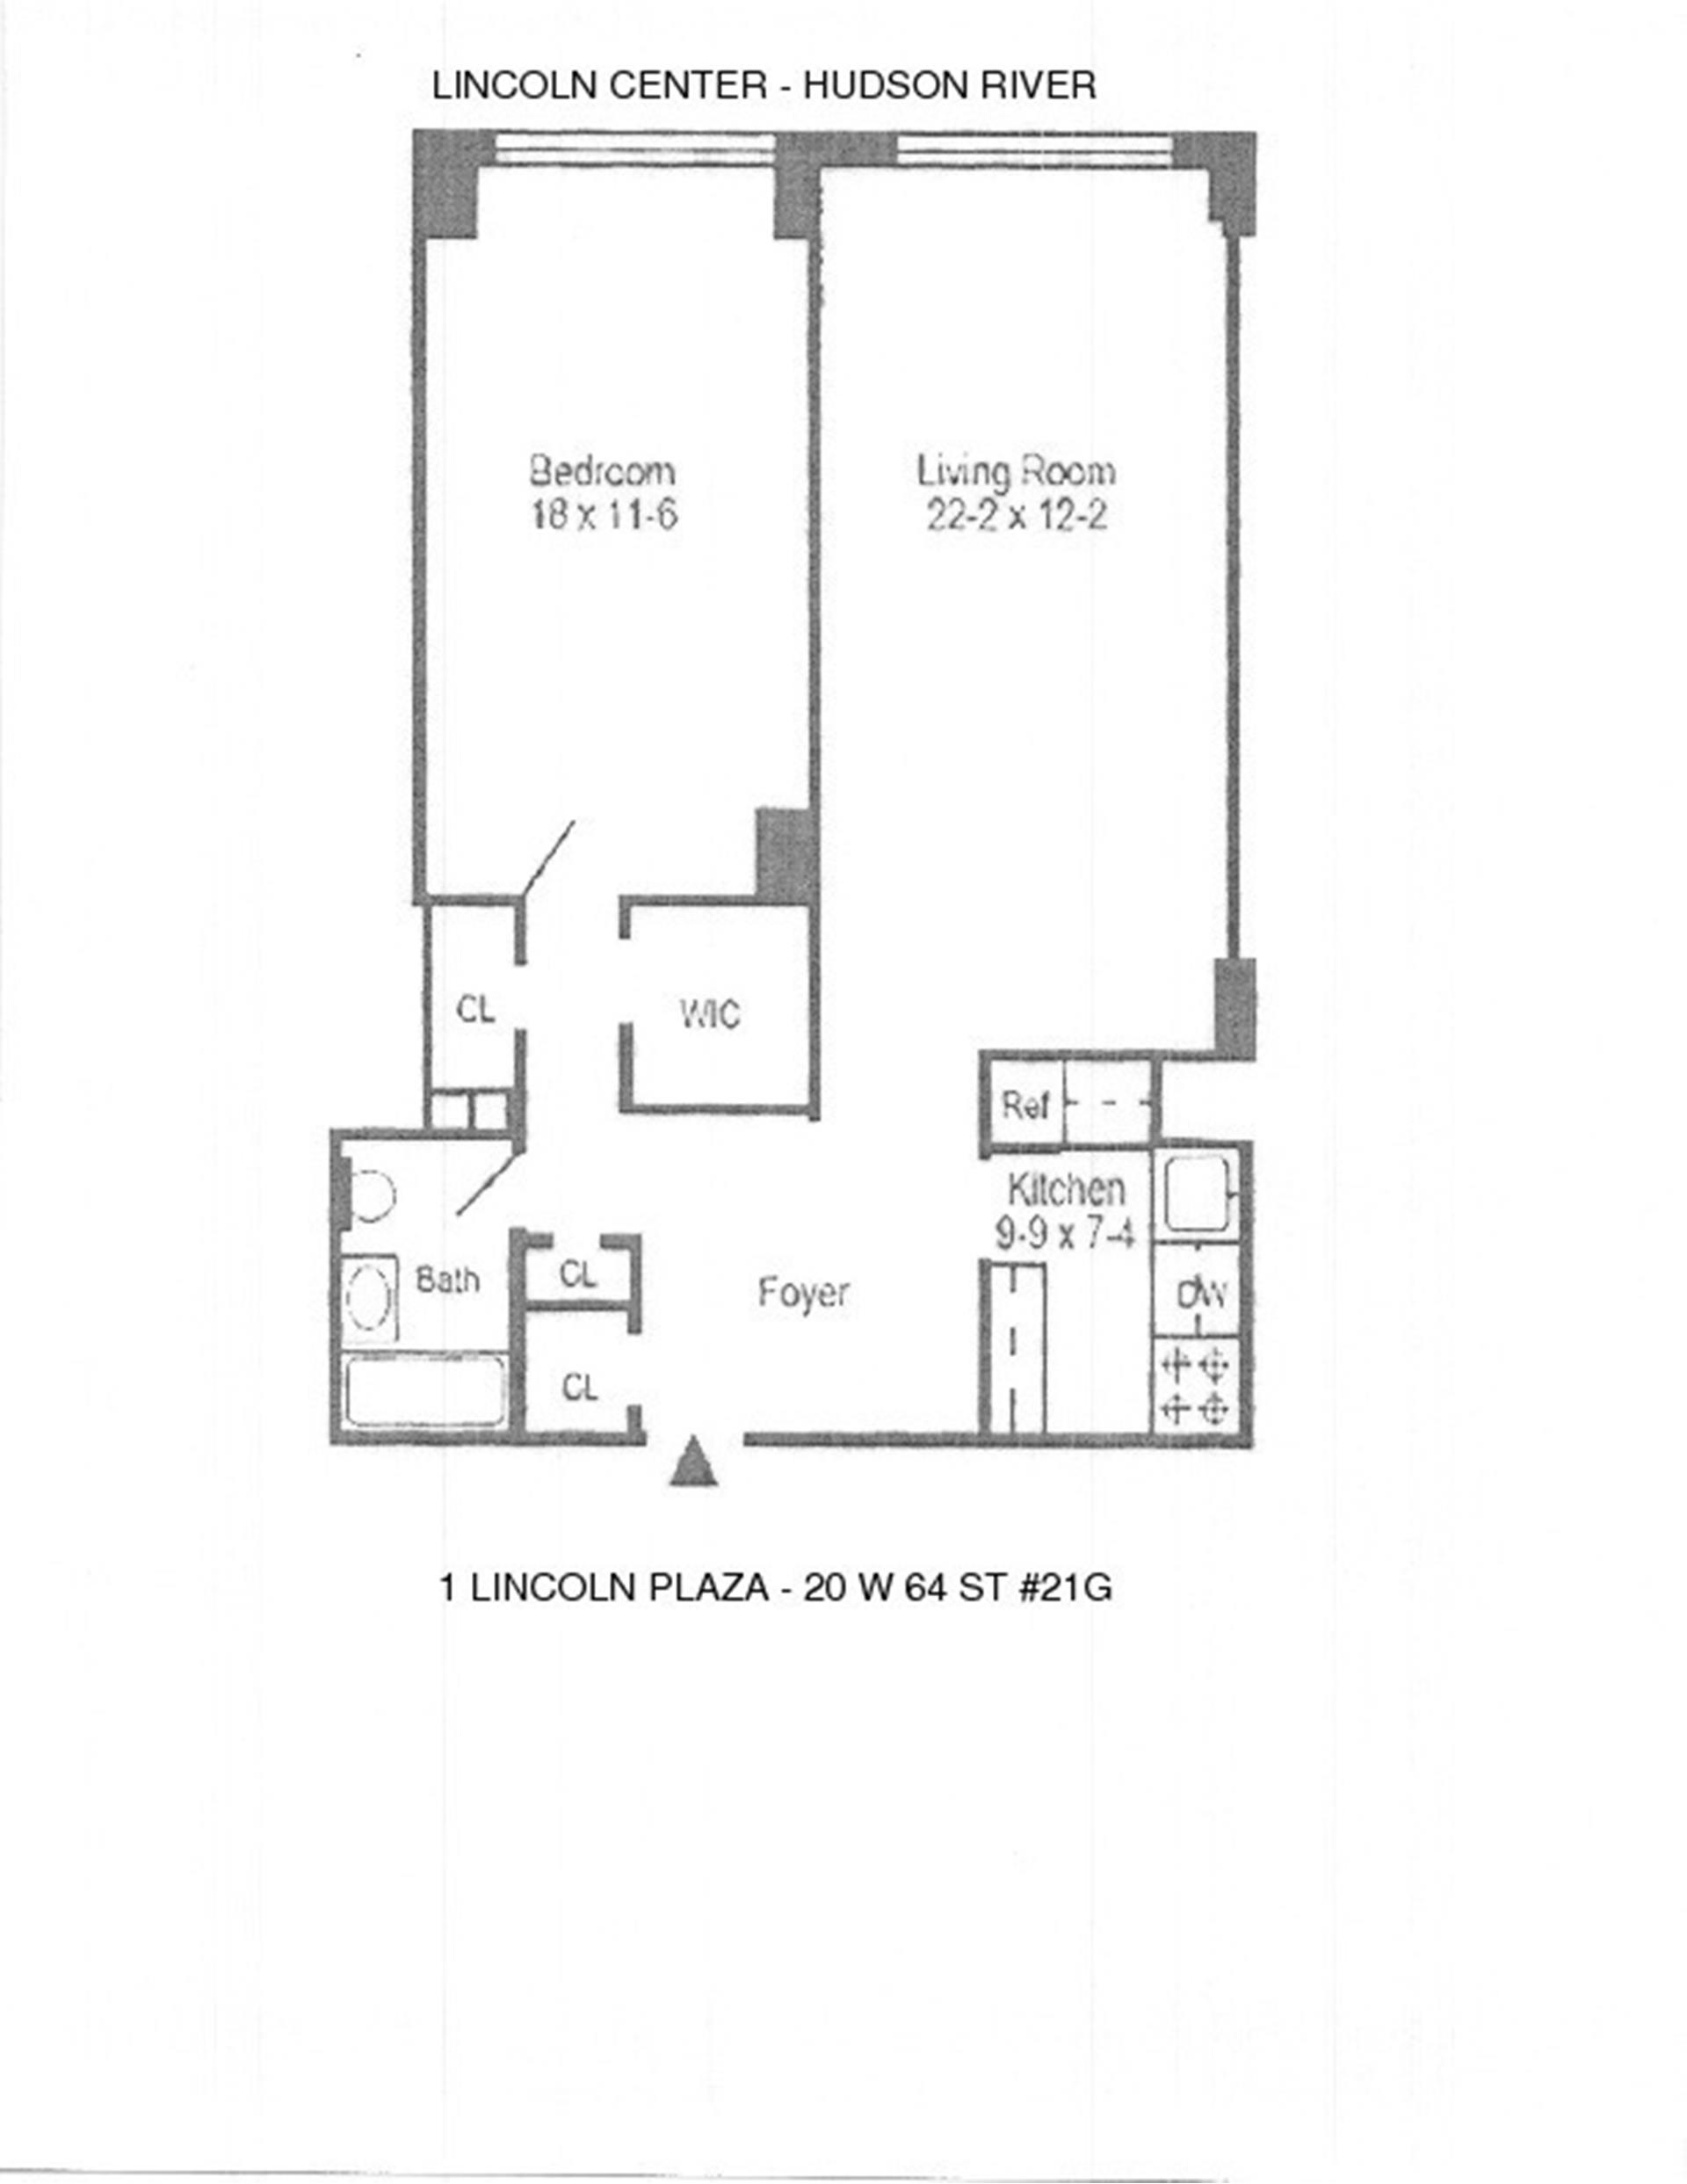 Floor plan of ONE LINCOLN PLAZA, 20 West 64th St, 21G - Lincoln Square, New York